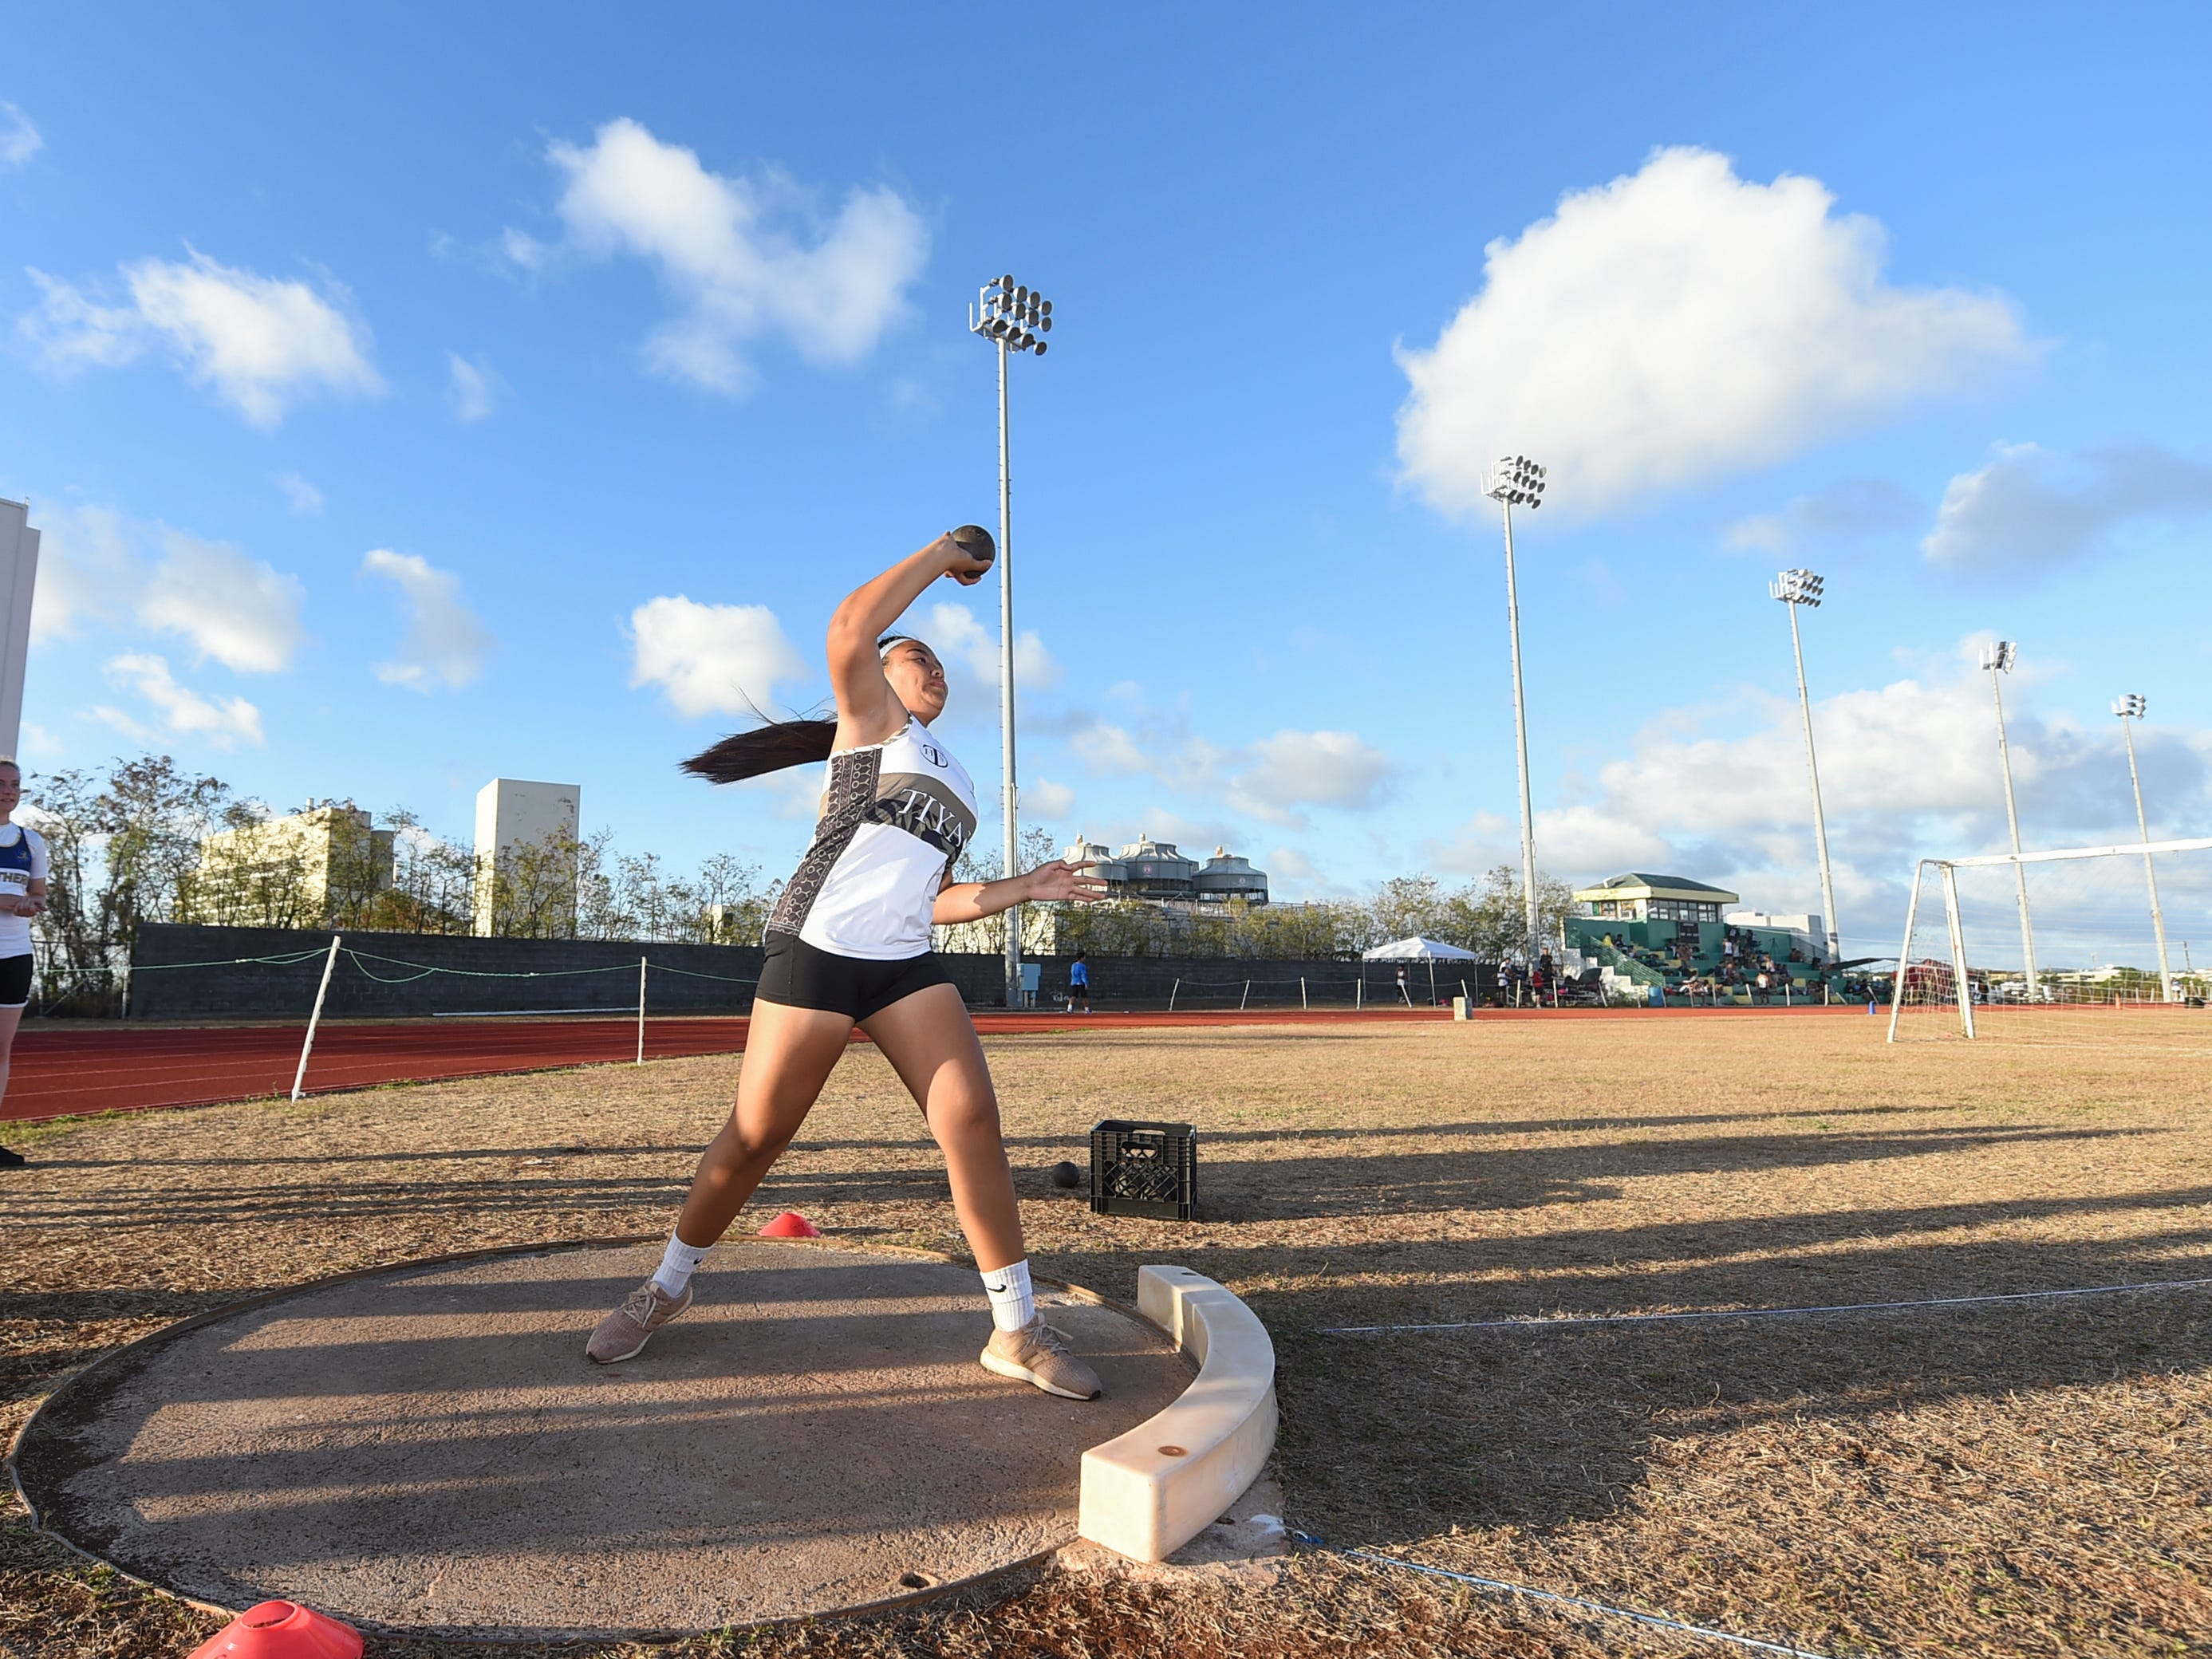 Tiyan High's Tasi Mayo, 16, competes in the Shot Put 4kg Varsity during a IIAAG Track and Field meet at John F. Kennedy Ramsey Field in Tamuning on May 10, 2019.